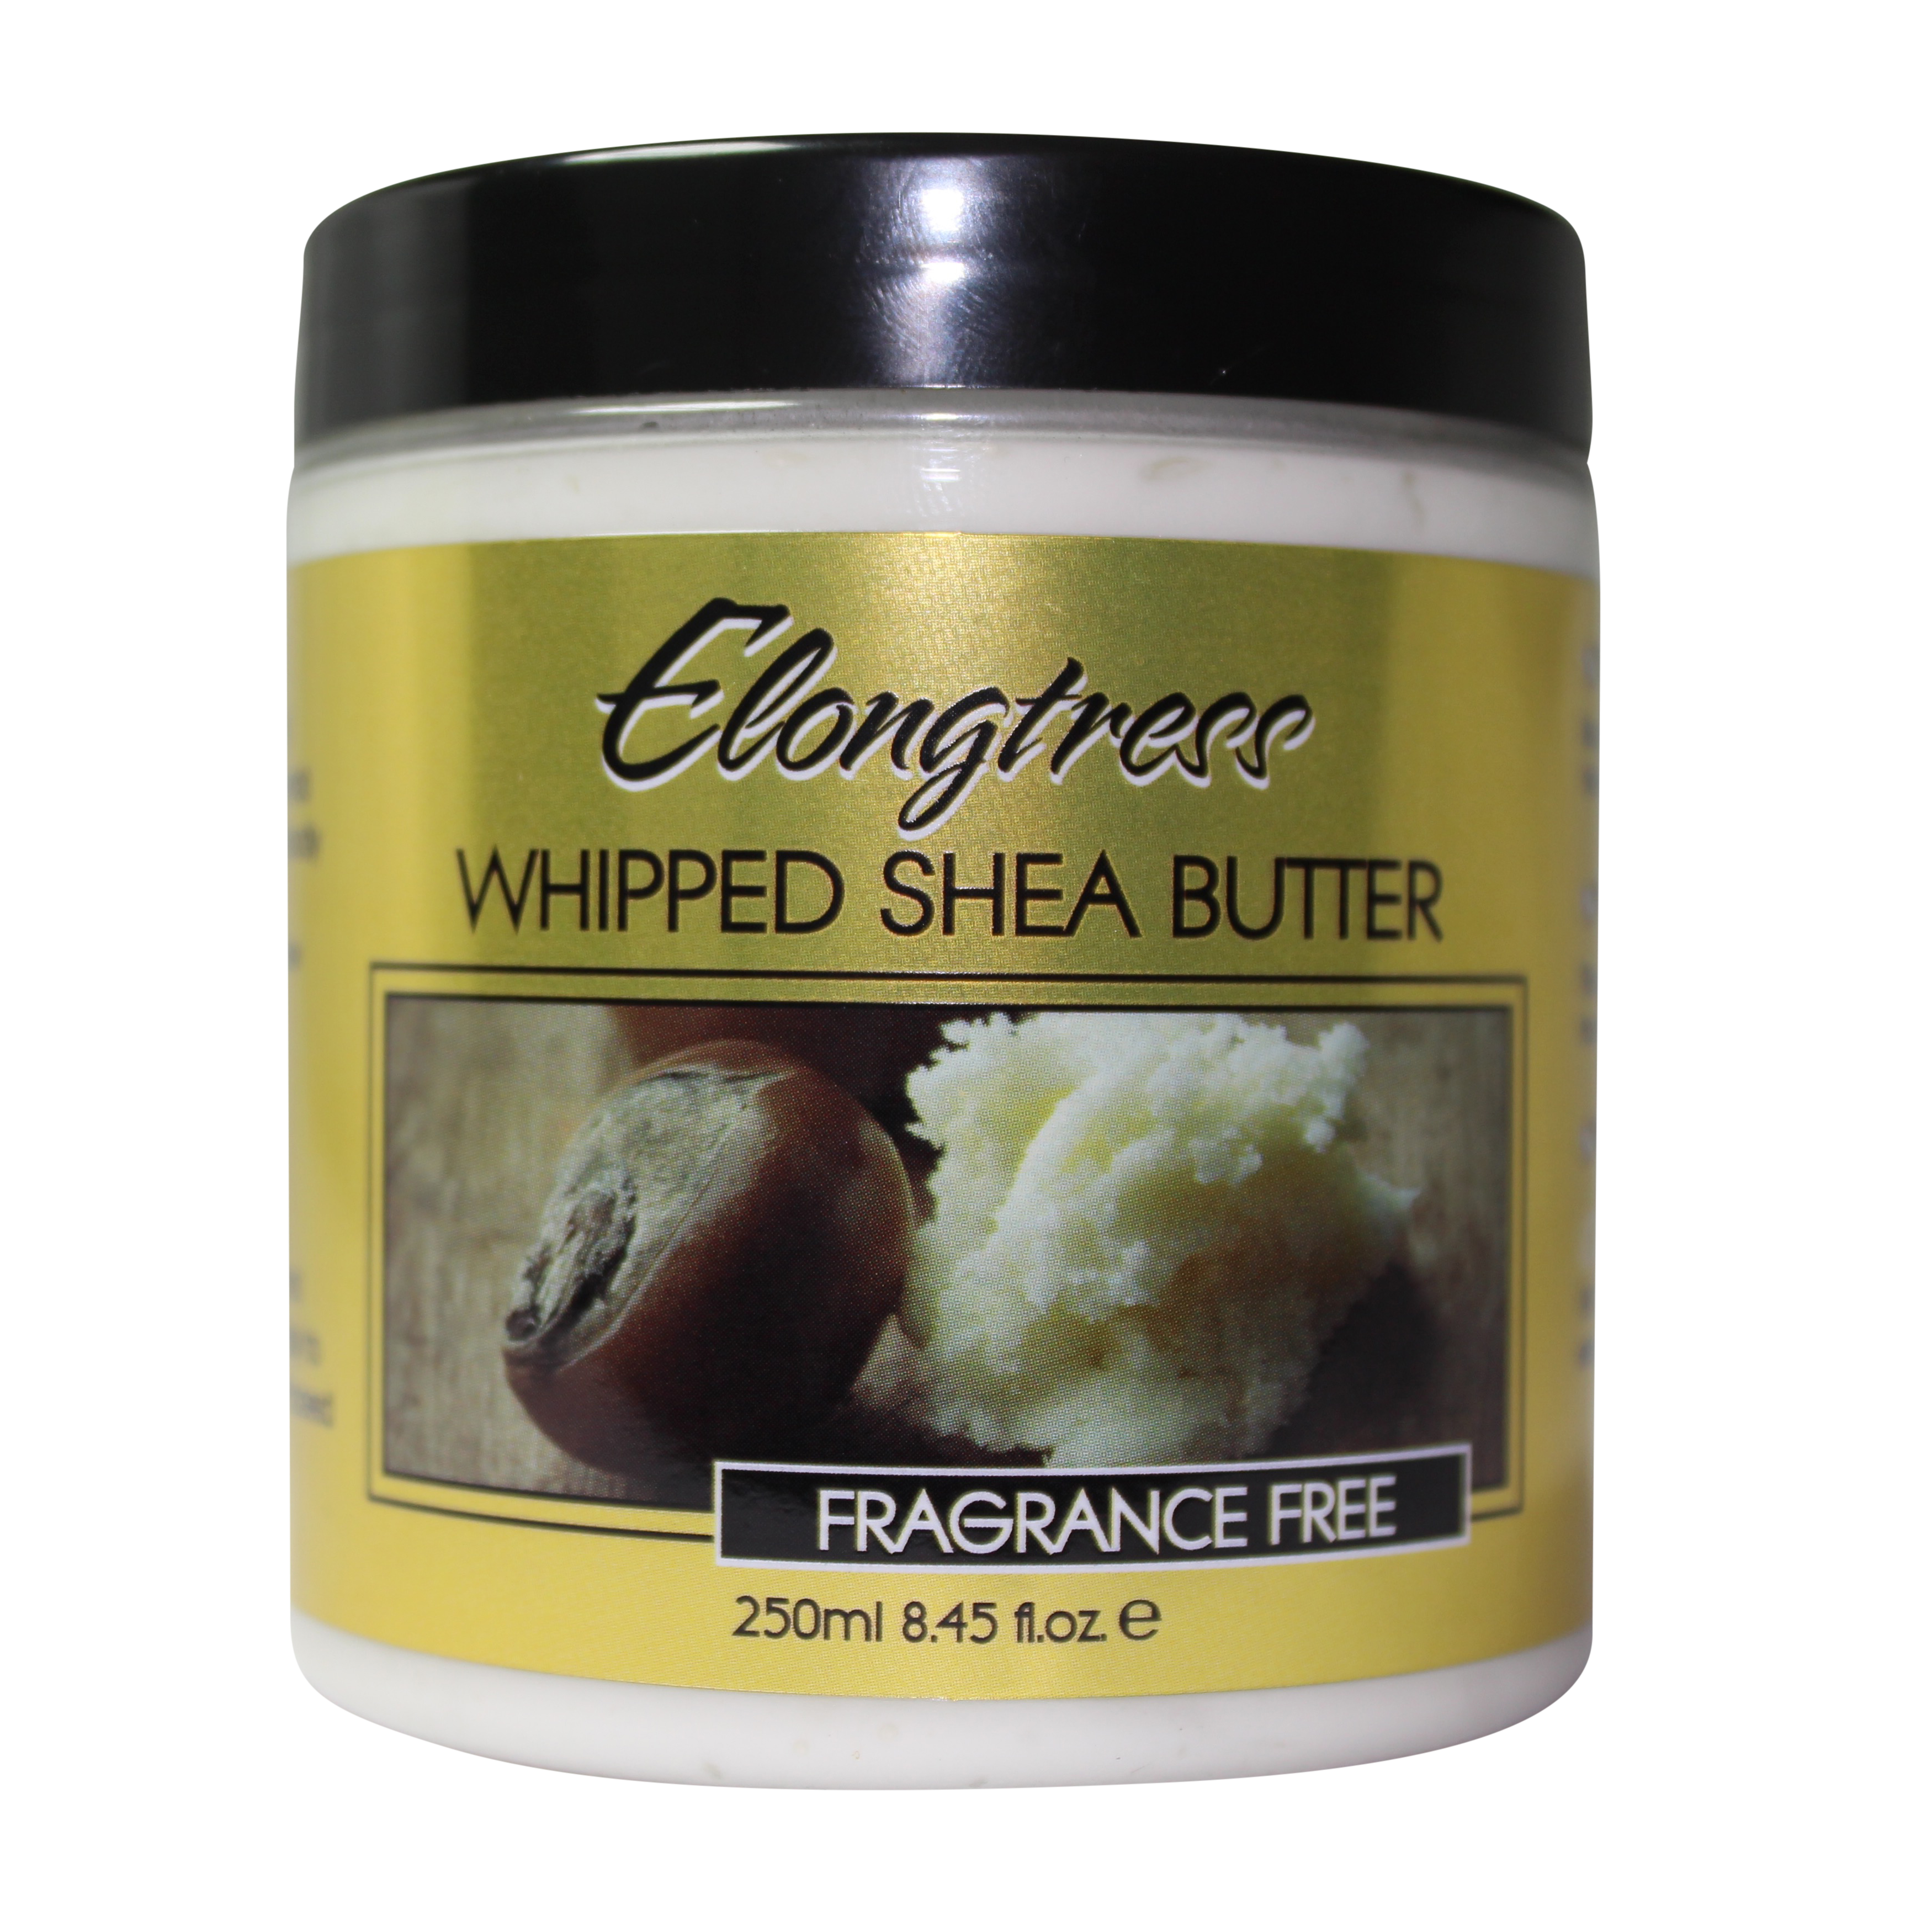 Whipped Shea Butter By Elongtress - Fragrance Free